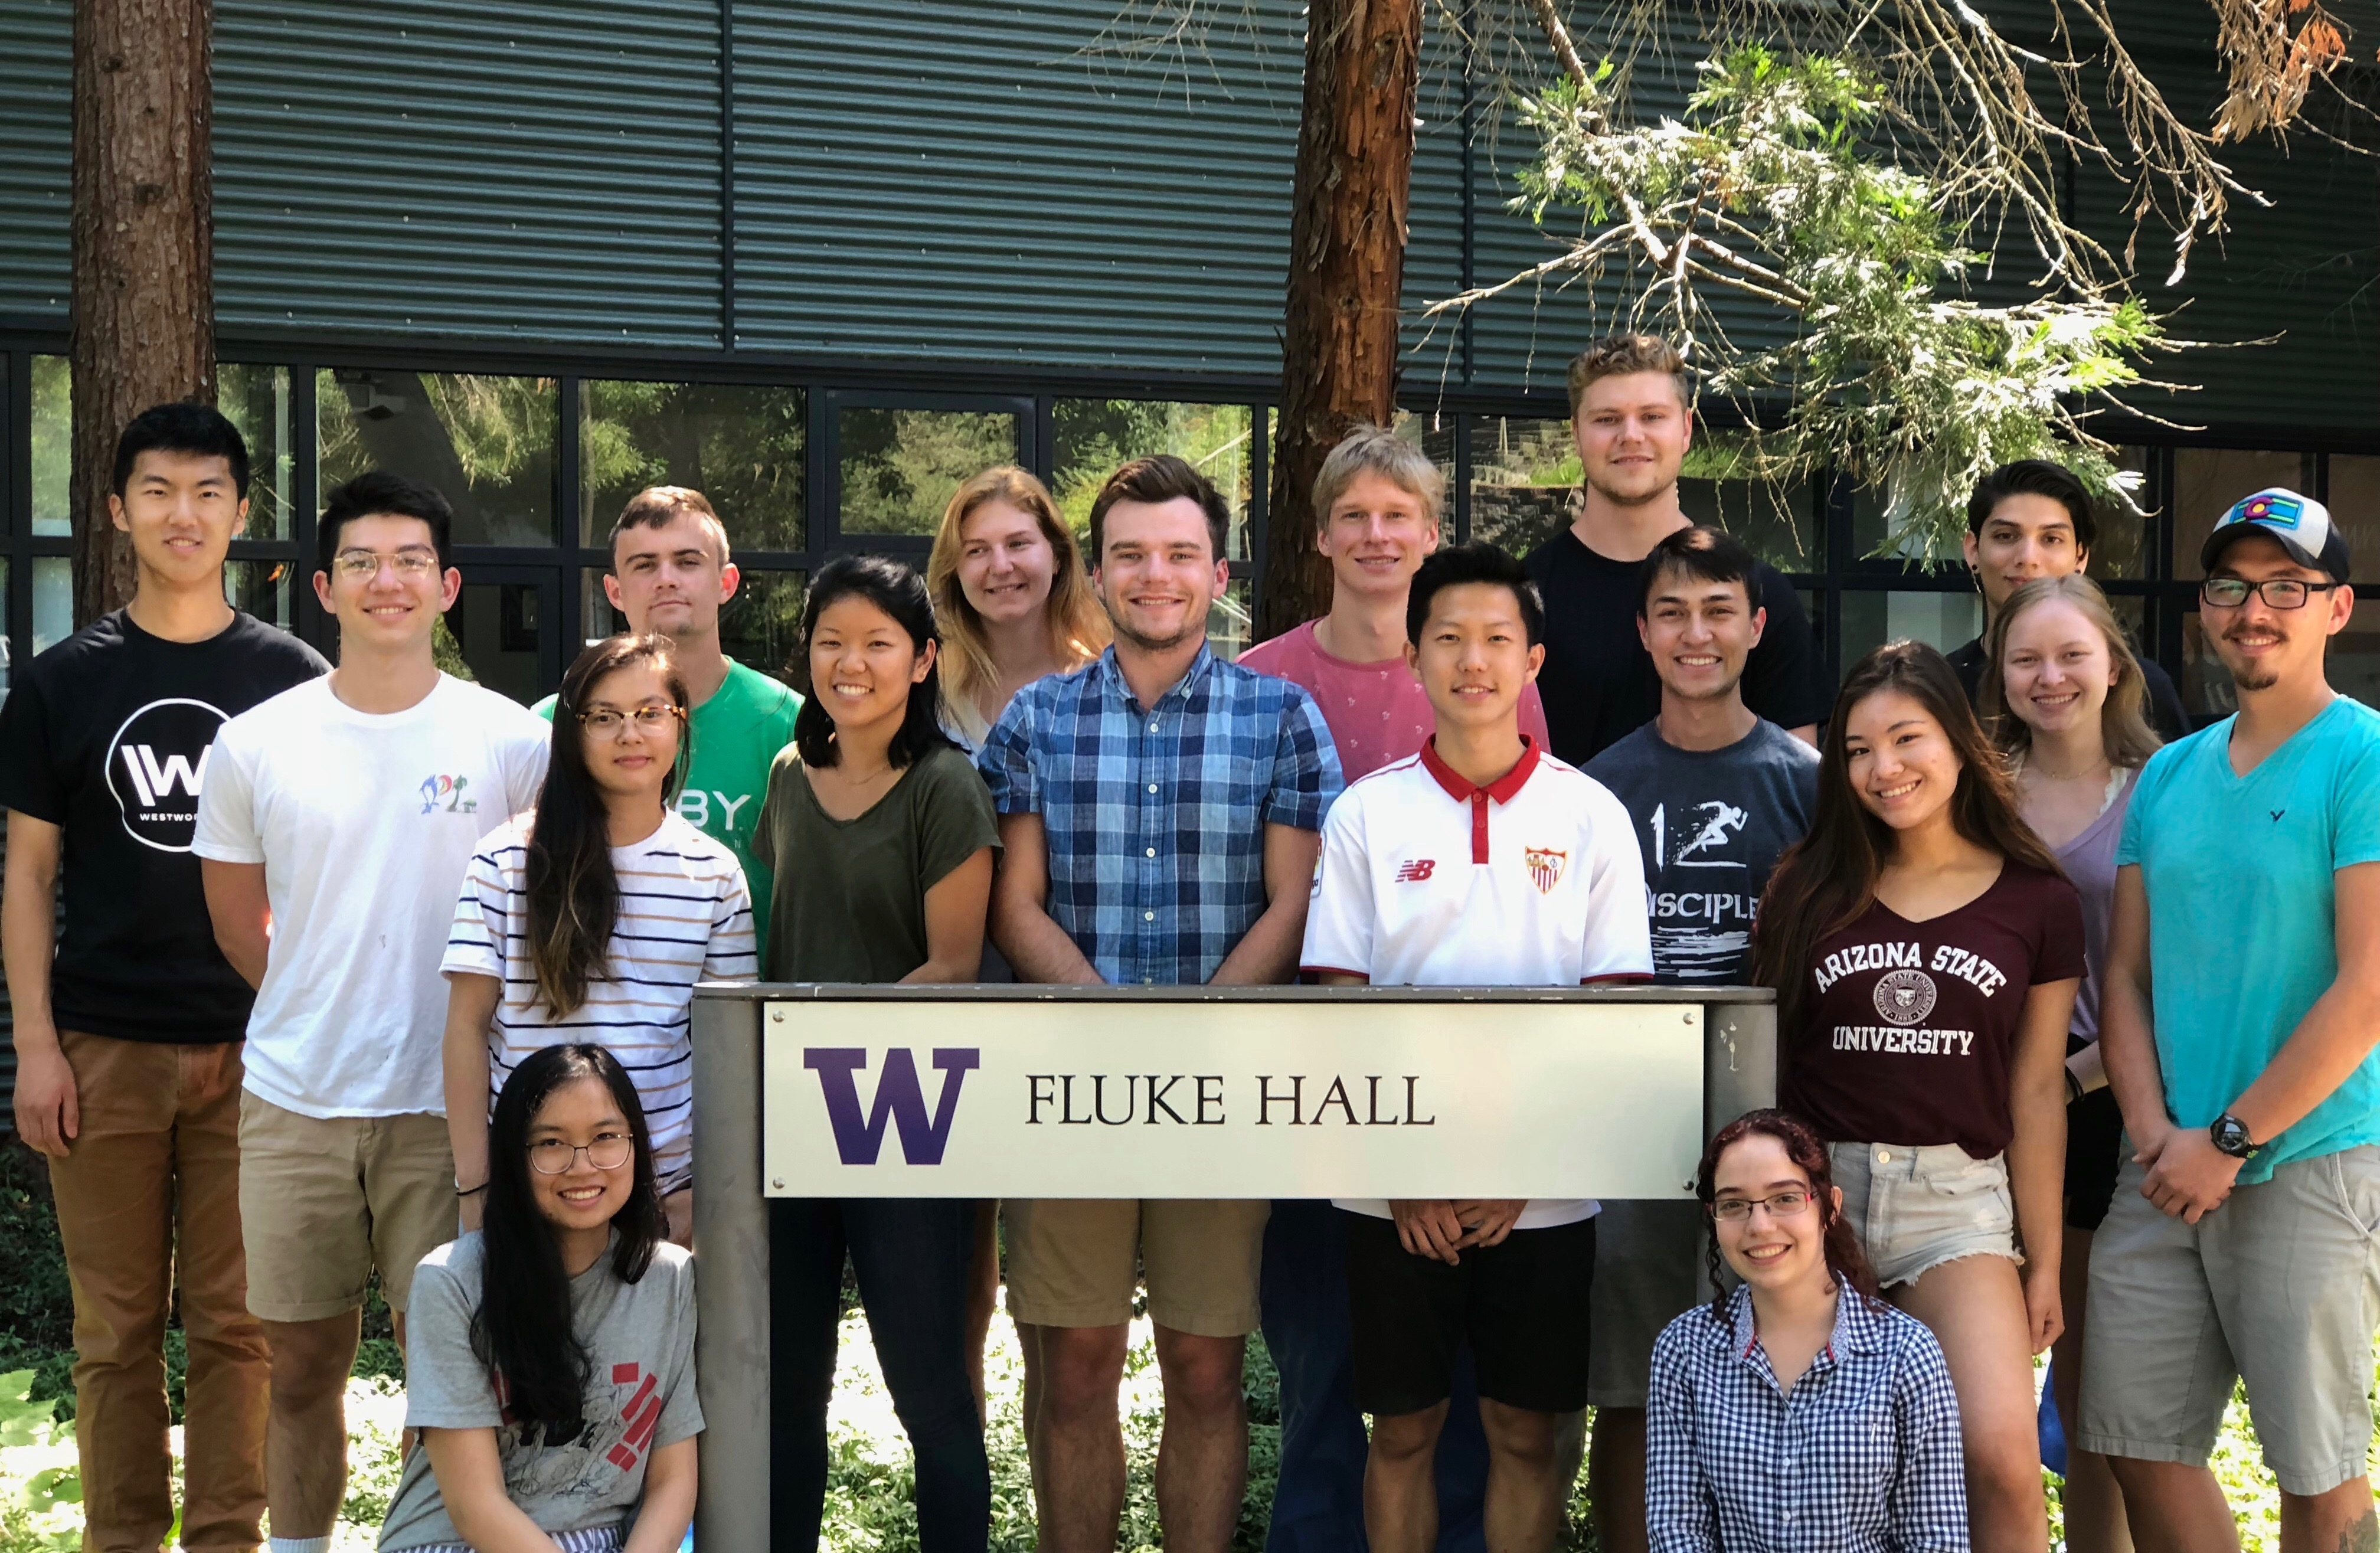 Students stand together in front of Fluke Hall